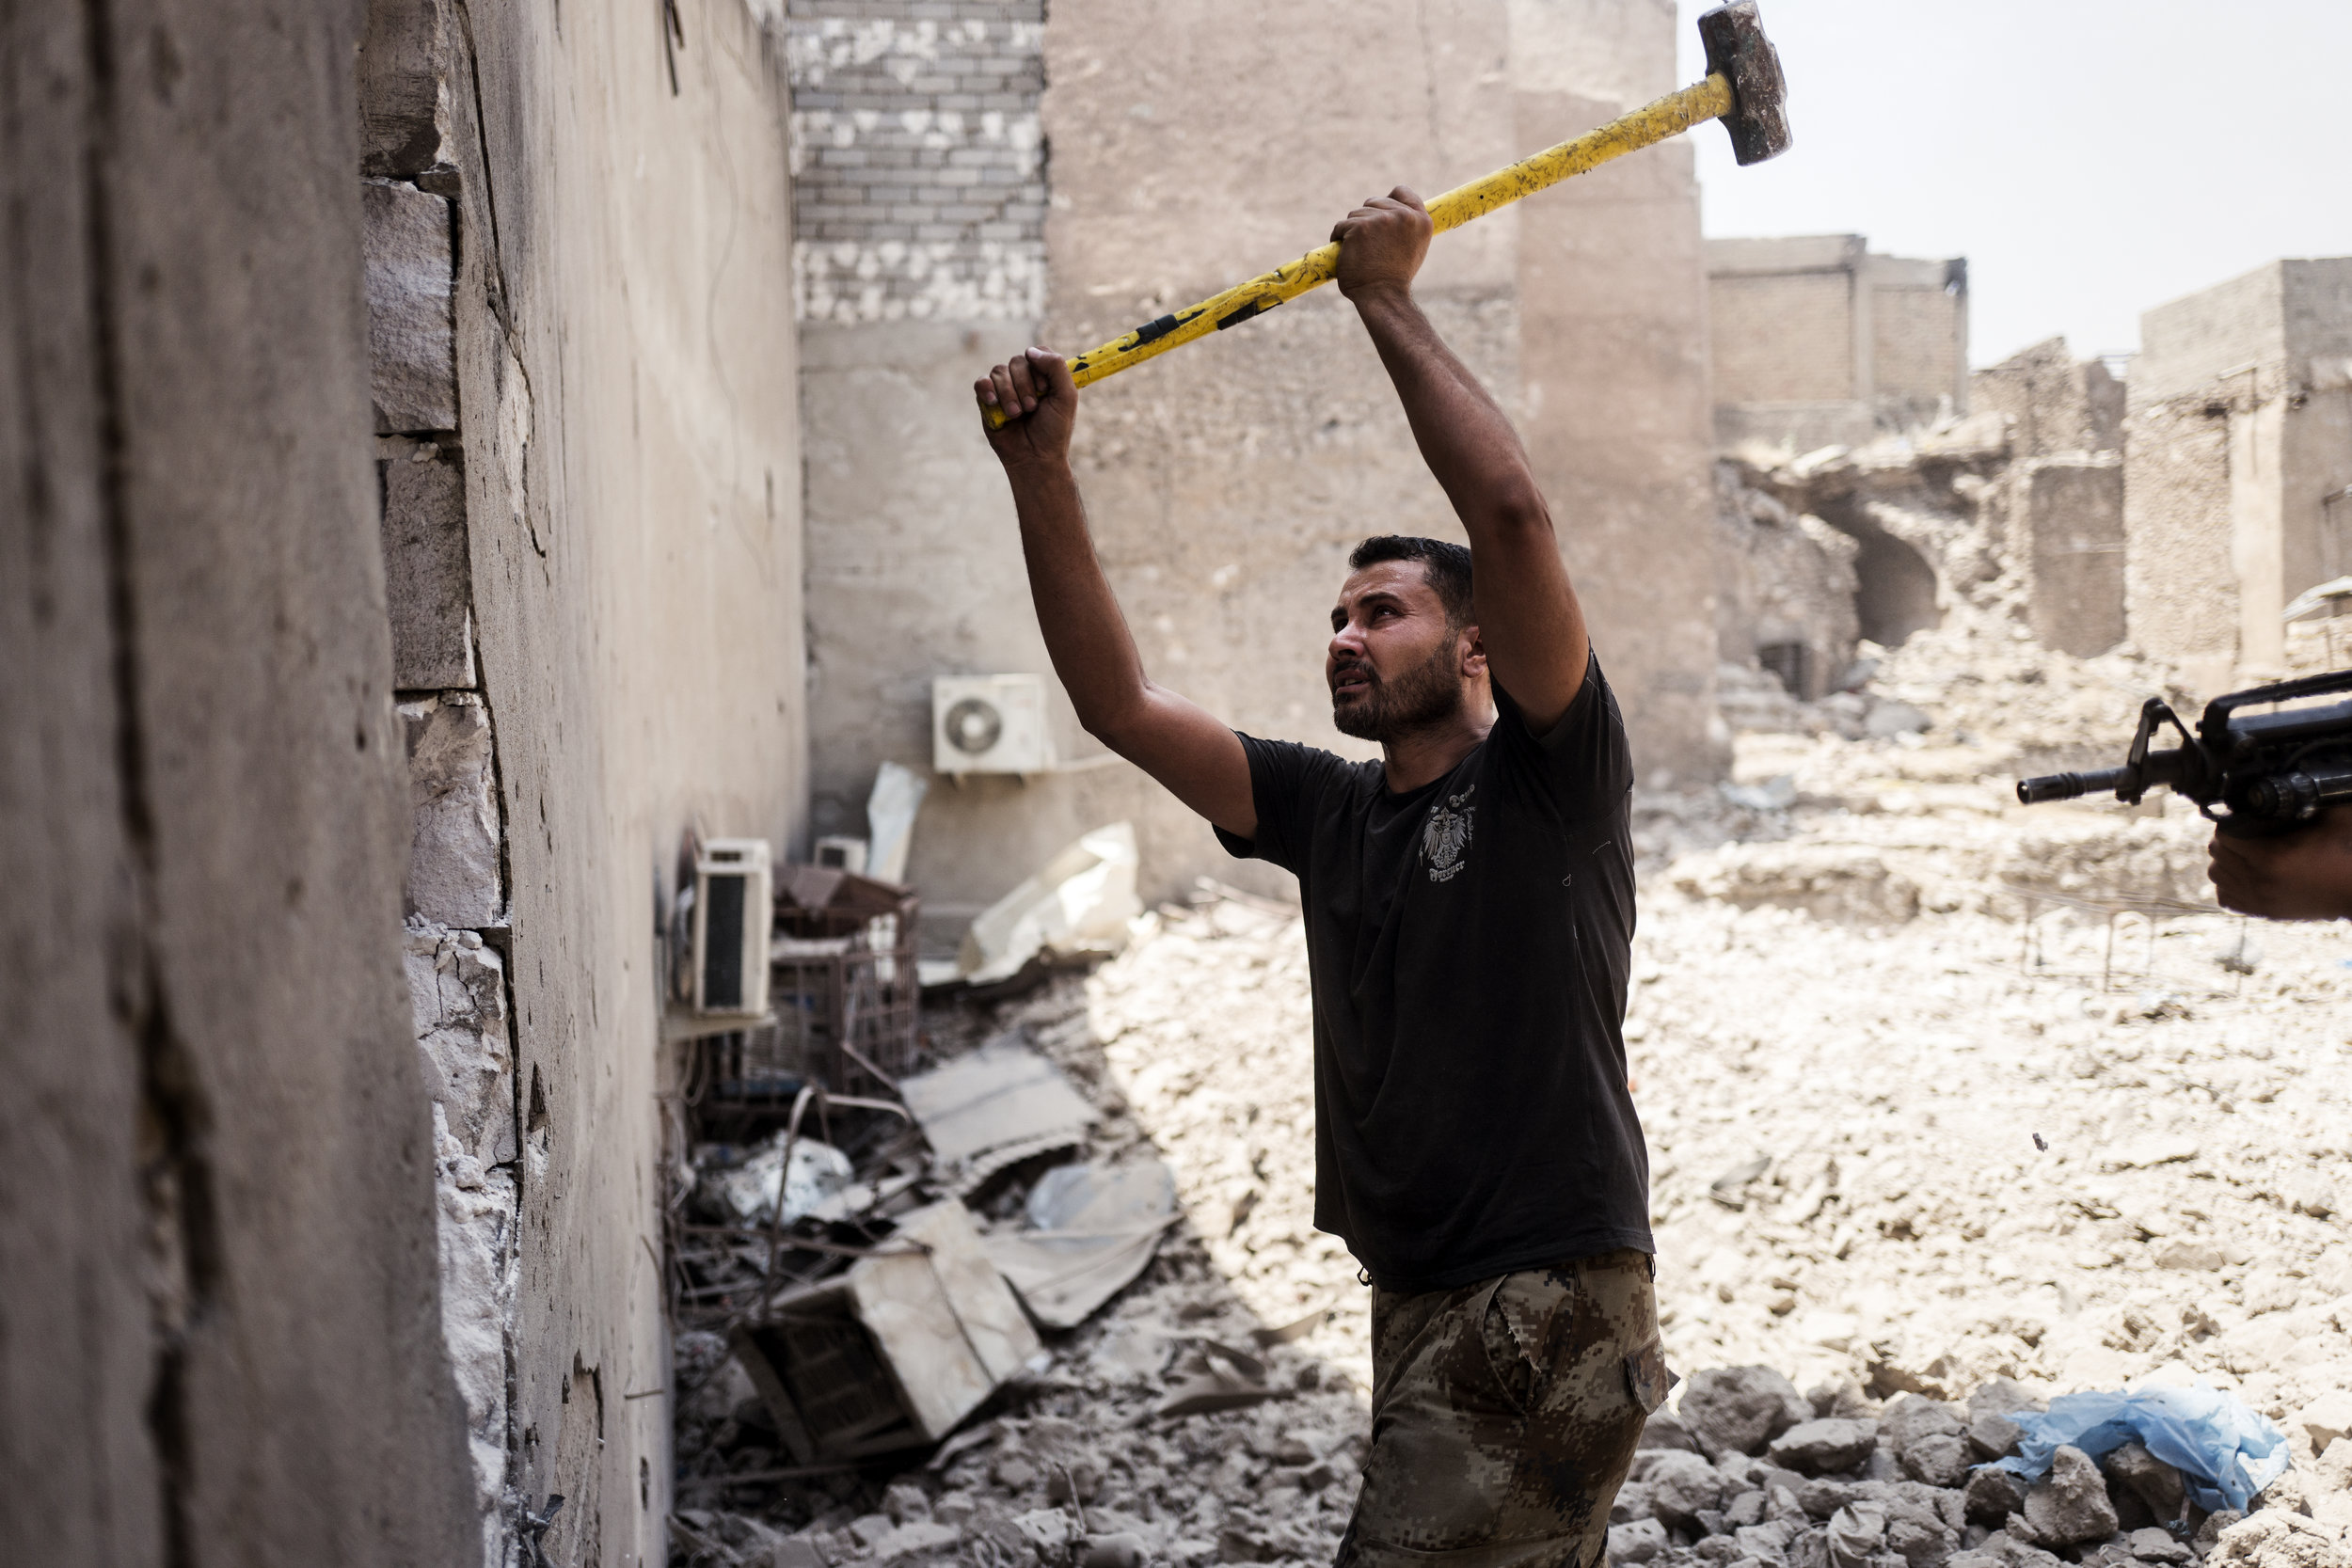 One of the many tactics used to clear the city was going from building to building through holes in the walls to avoid getting exposed to enemy fire.